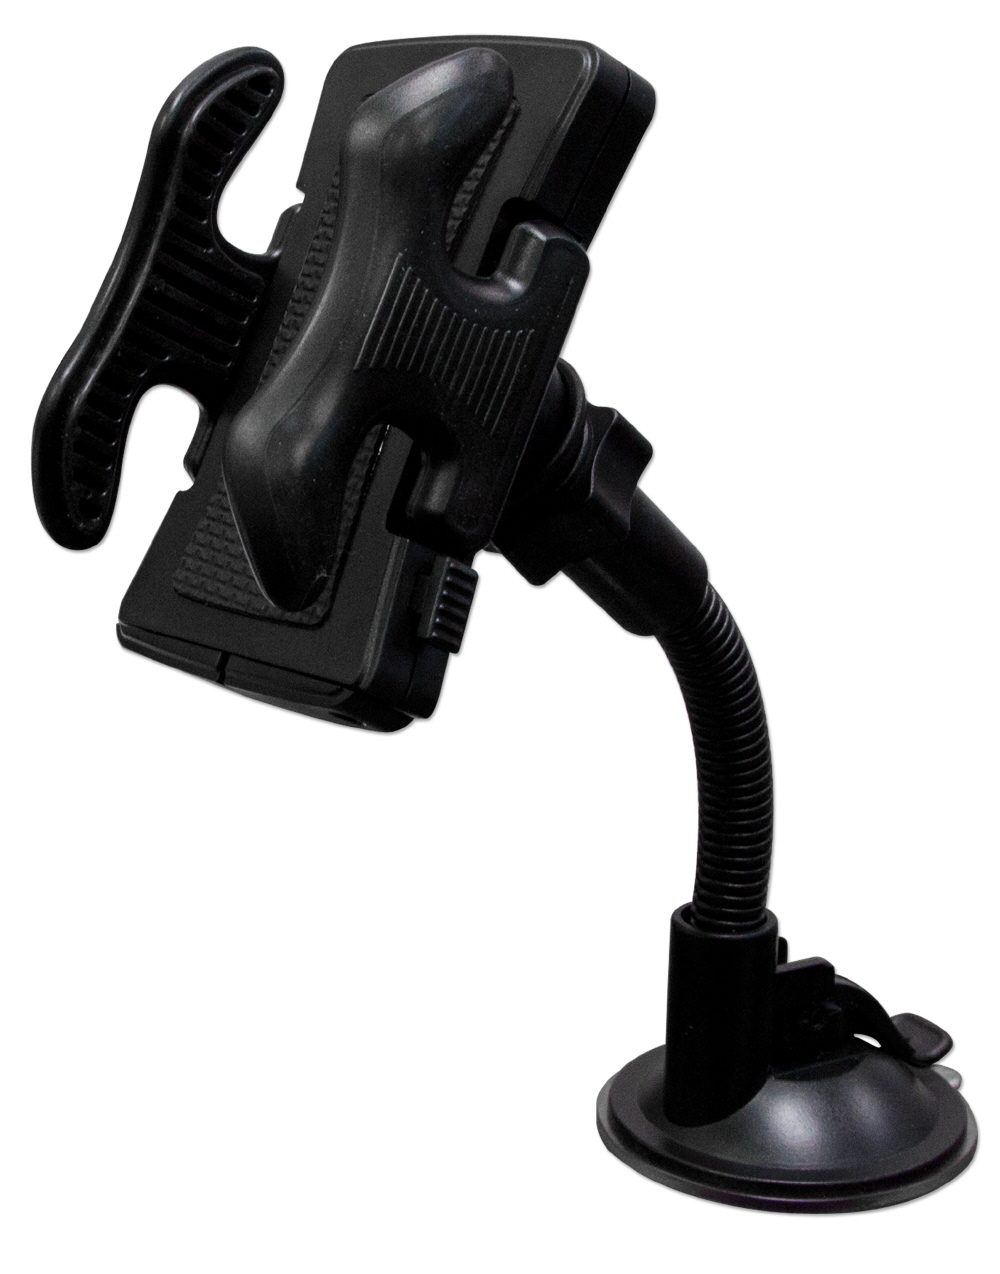 Universal Windshield Mount Holder for SmartPhone & GPS WH-C1 037229334142 Universal Windshield Mount Holder with Flexible Gooseneck for SmartPhone and GPS including iPod/iPhone ZTIPHONE-4-6-009 777763  WHC1 WH-C1      3926  microcenter David Chesrown Approved